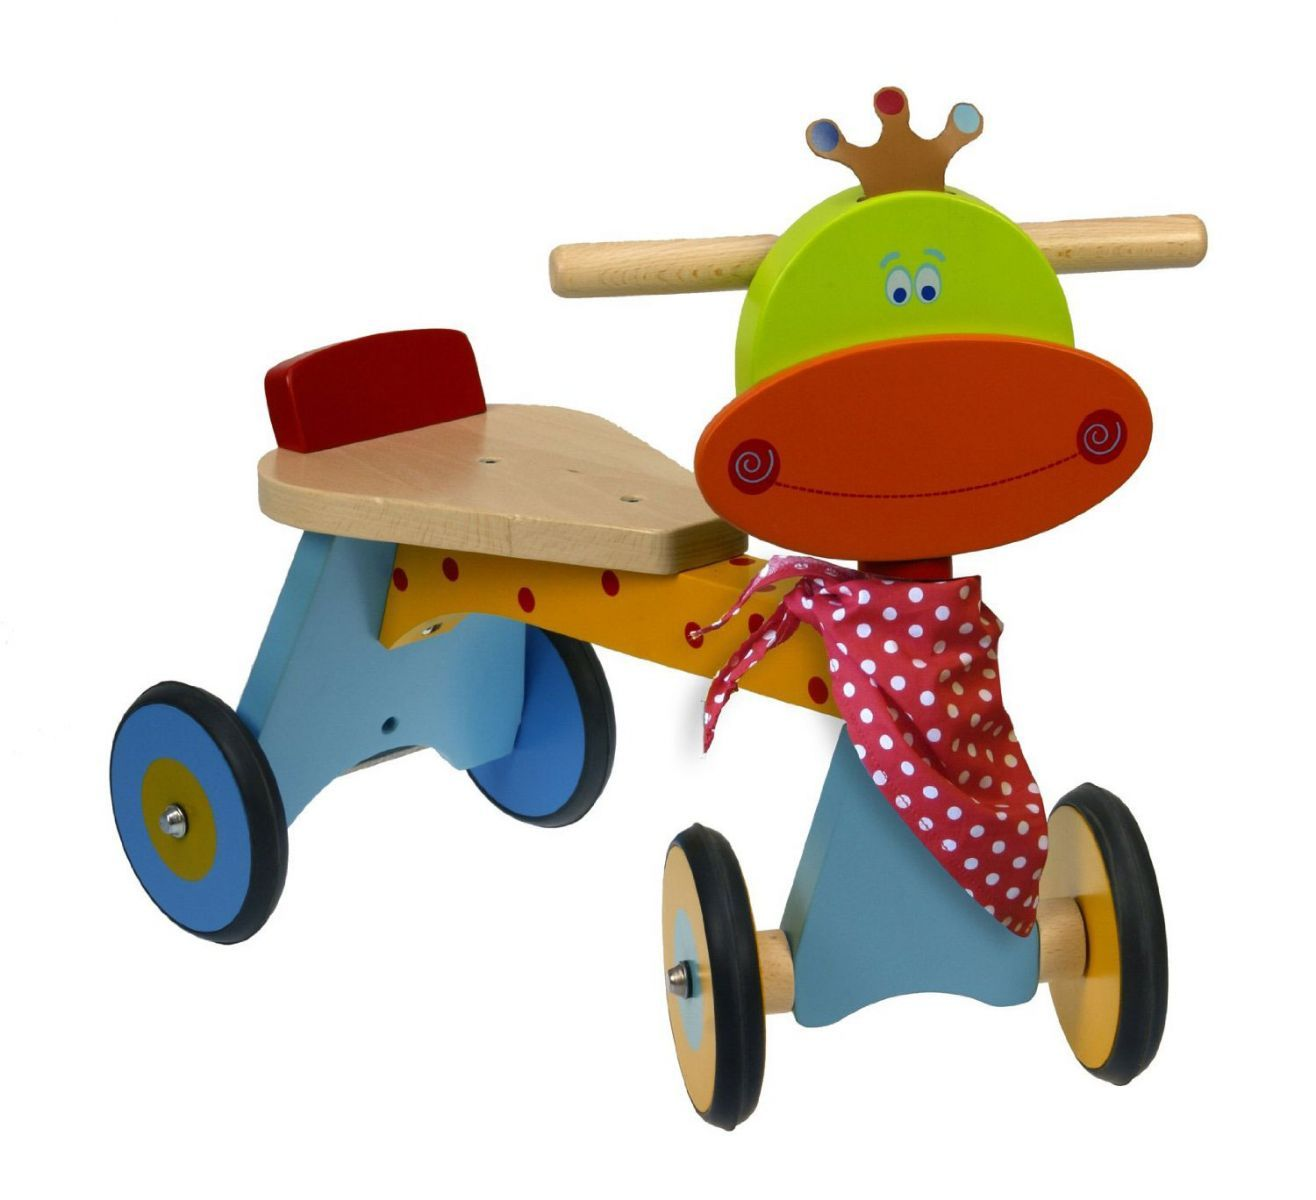 8 starter wooden ride-on toys for toddlers | toys | wooden